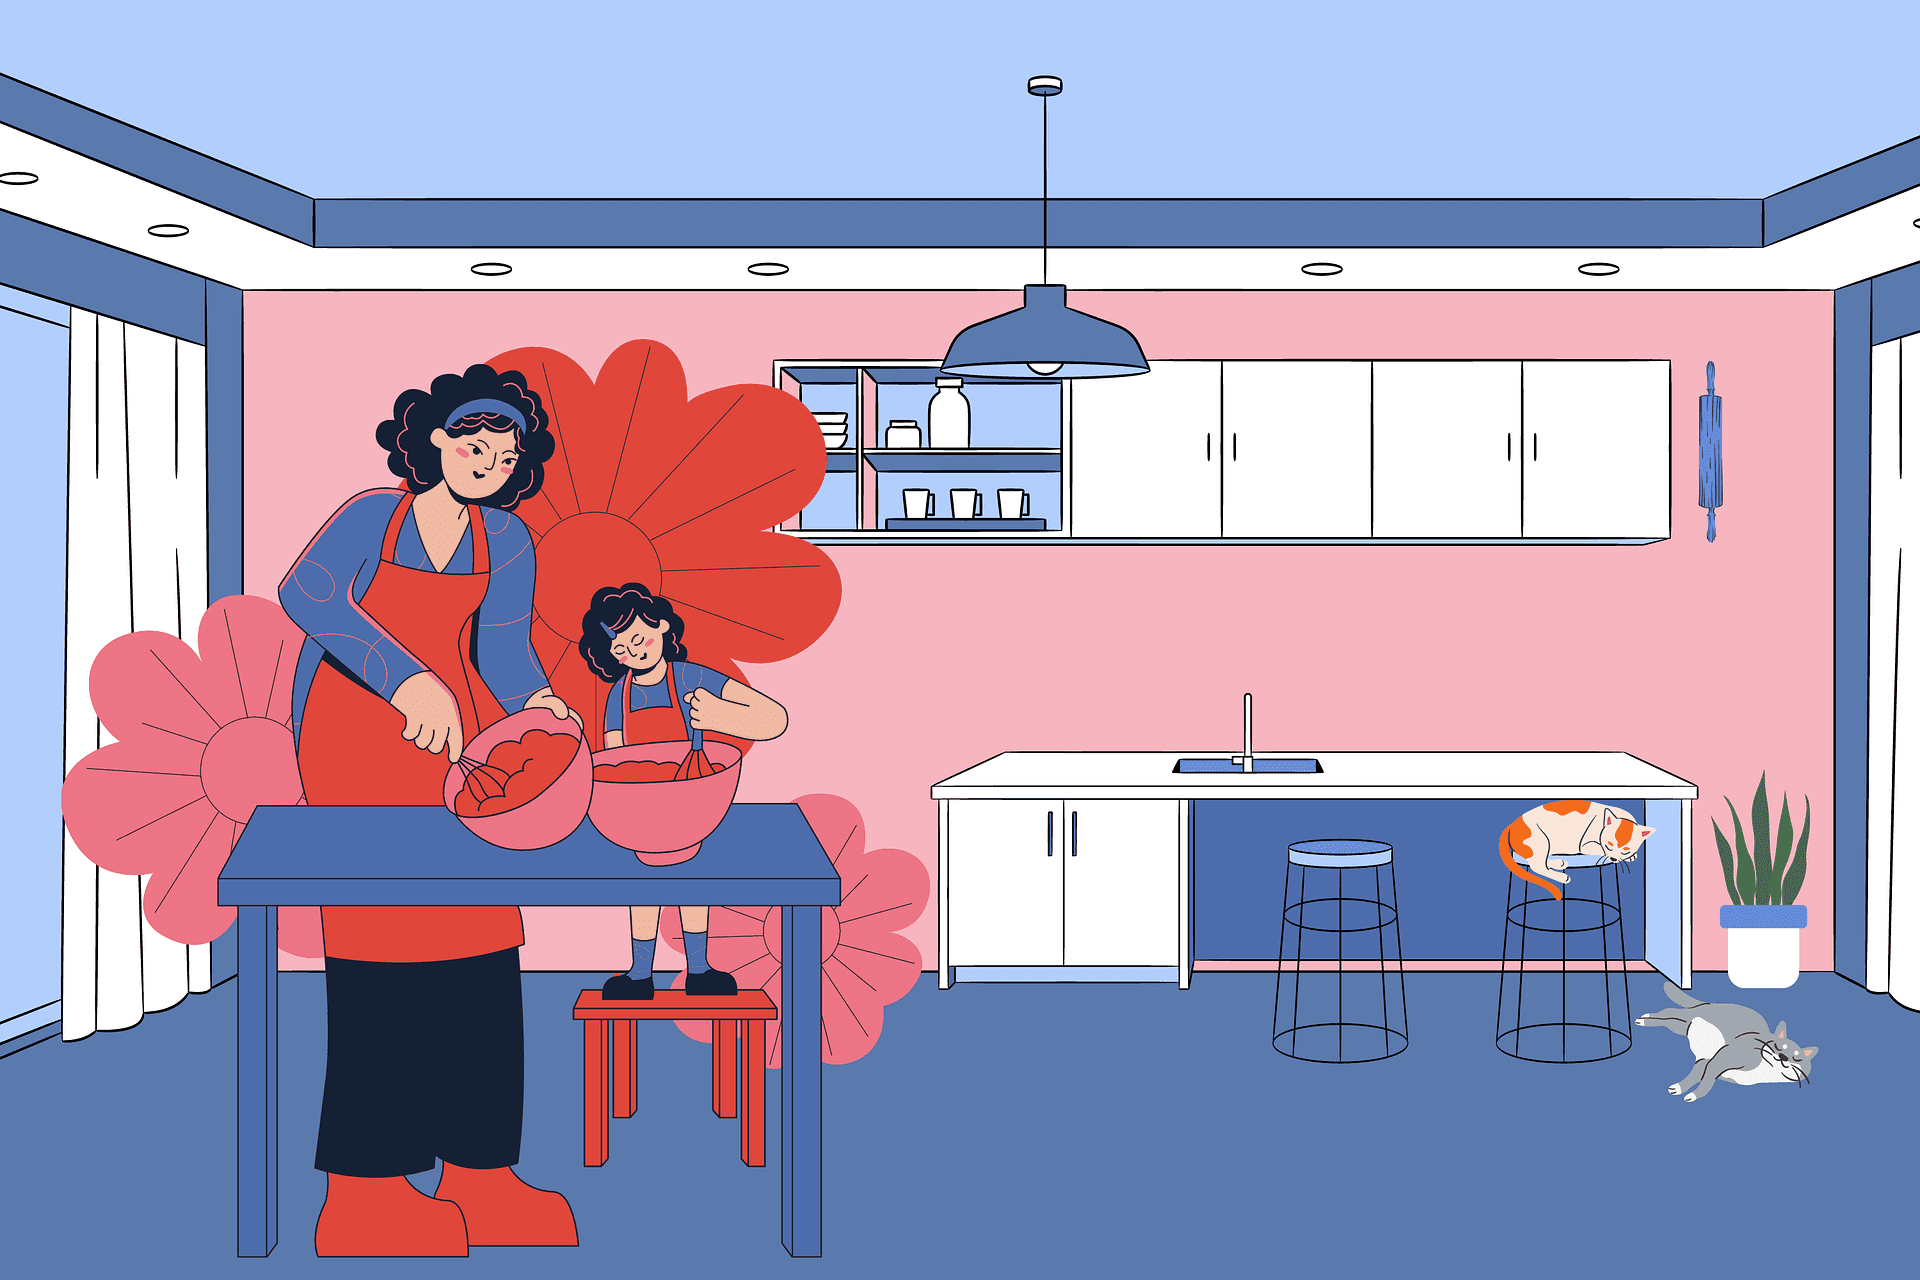 Cartoon of a mom and daughter cooking   Source: Pixabay